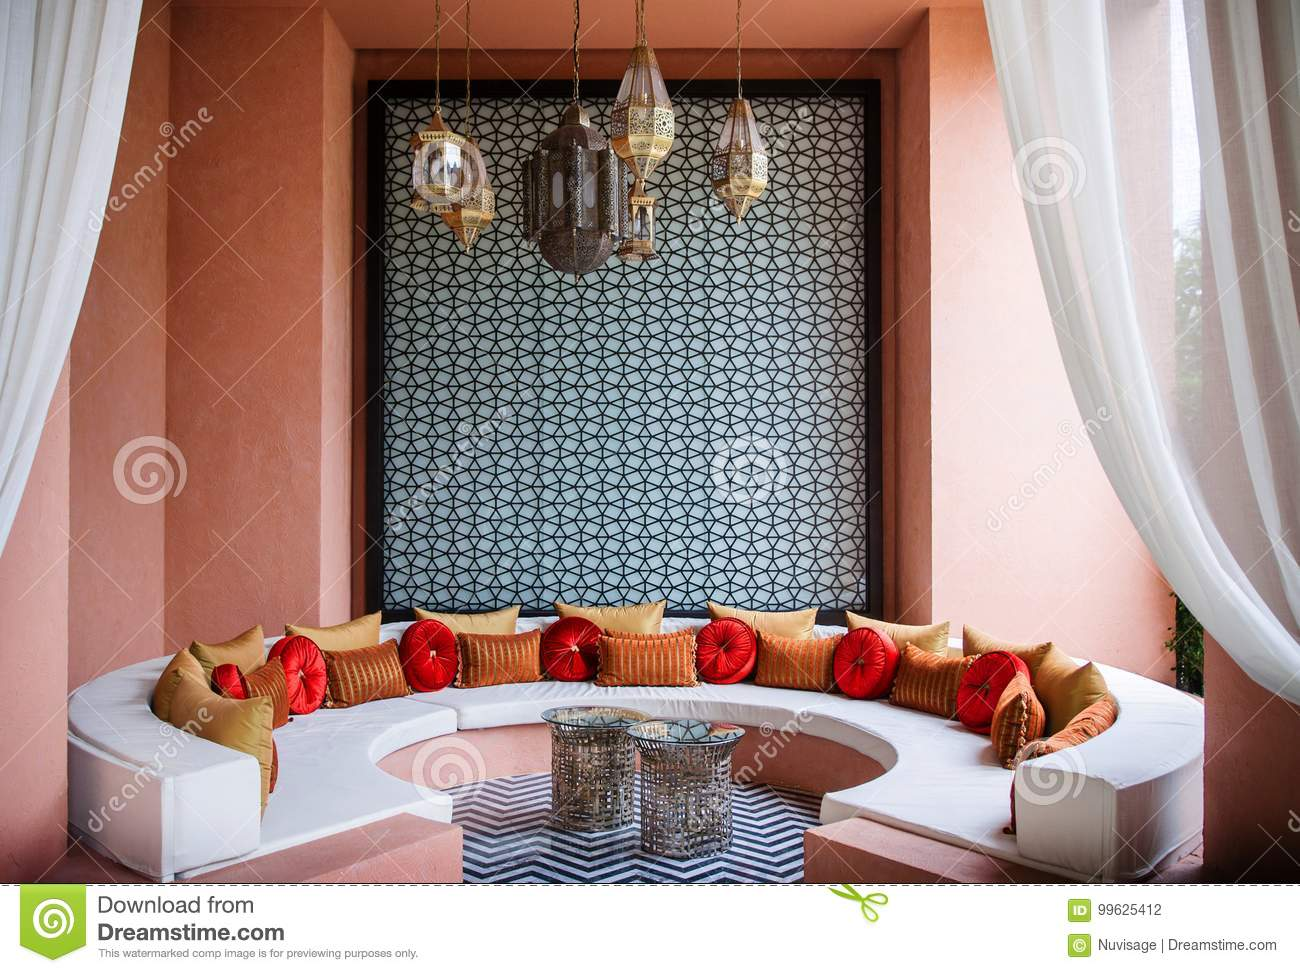 moroccan style living room decor pictures of design rooms decoration editorial june 8 2012 hua hin thailand details with colorful fabric and exquisite lamps